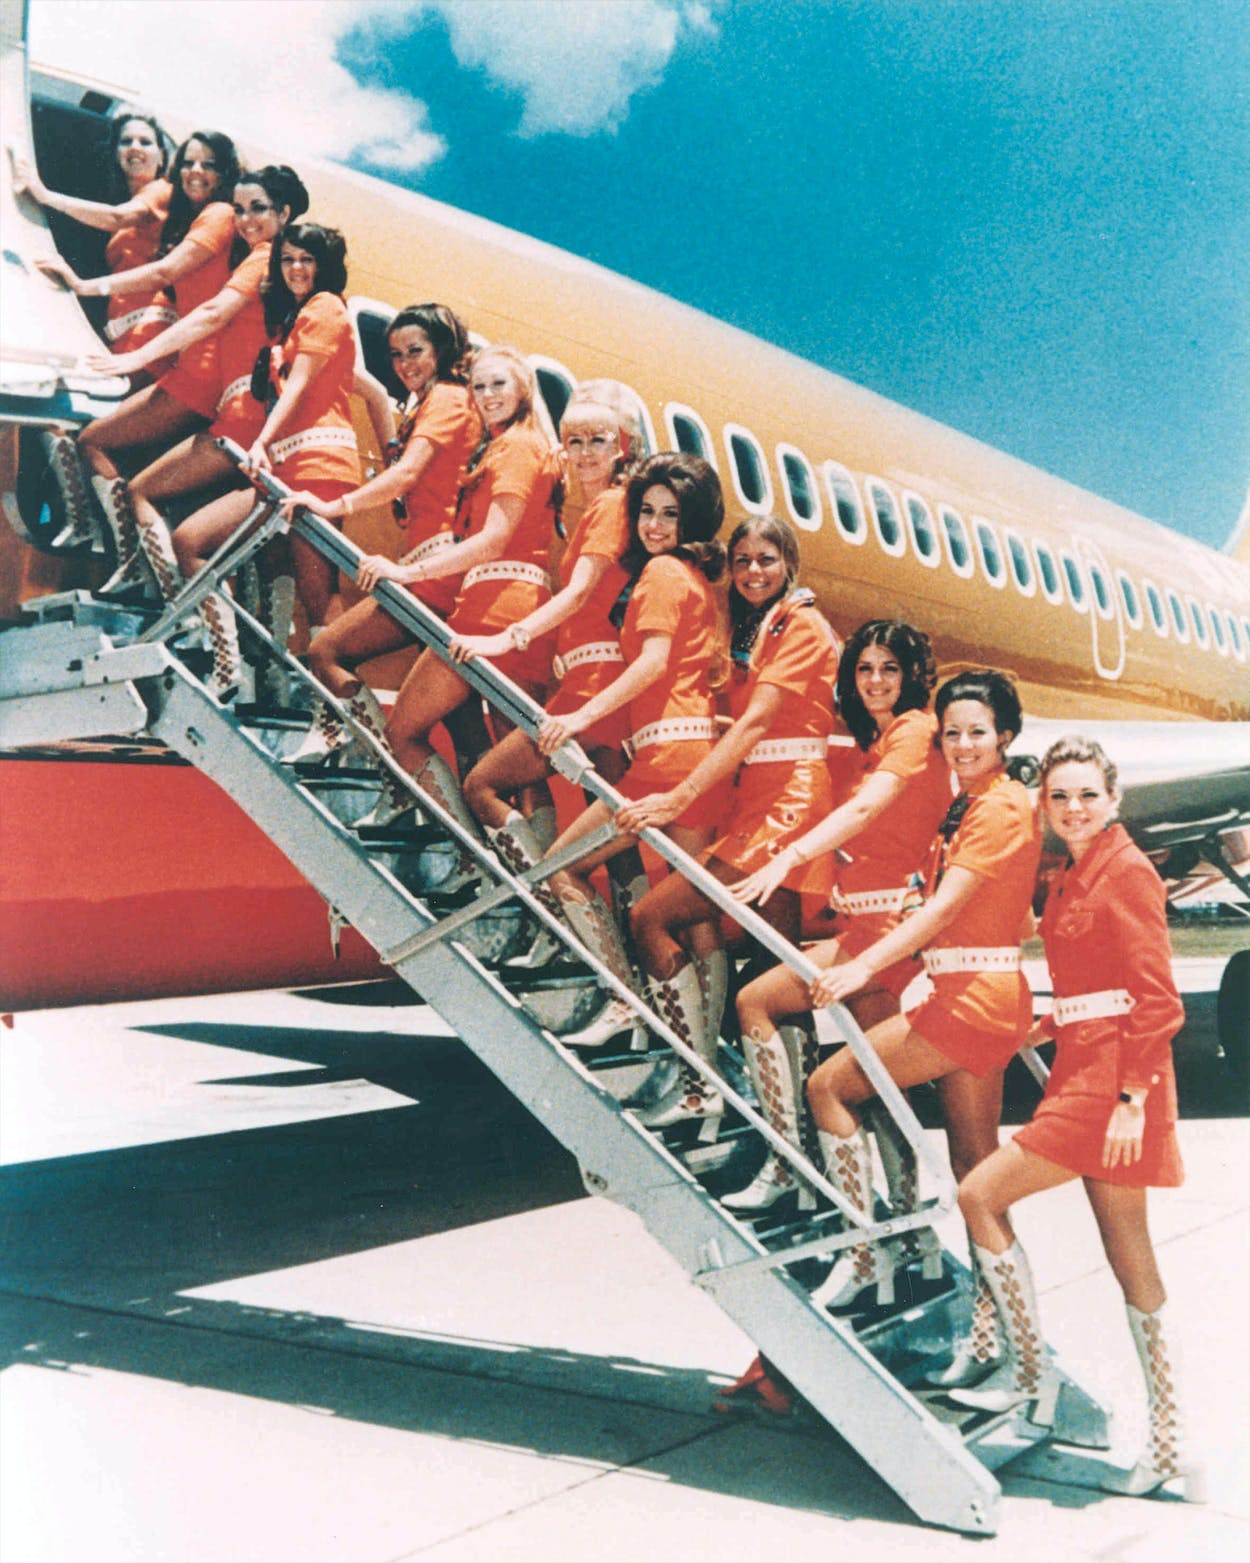 Southwest Airlines hostesses in the '70s.